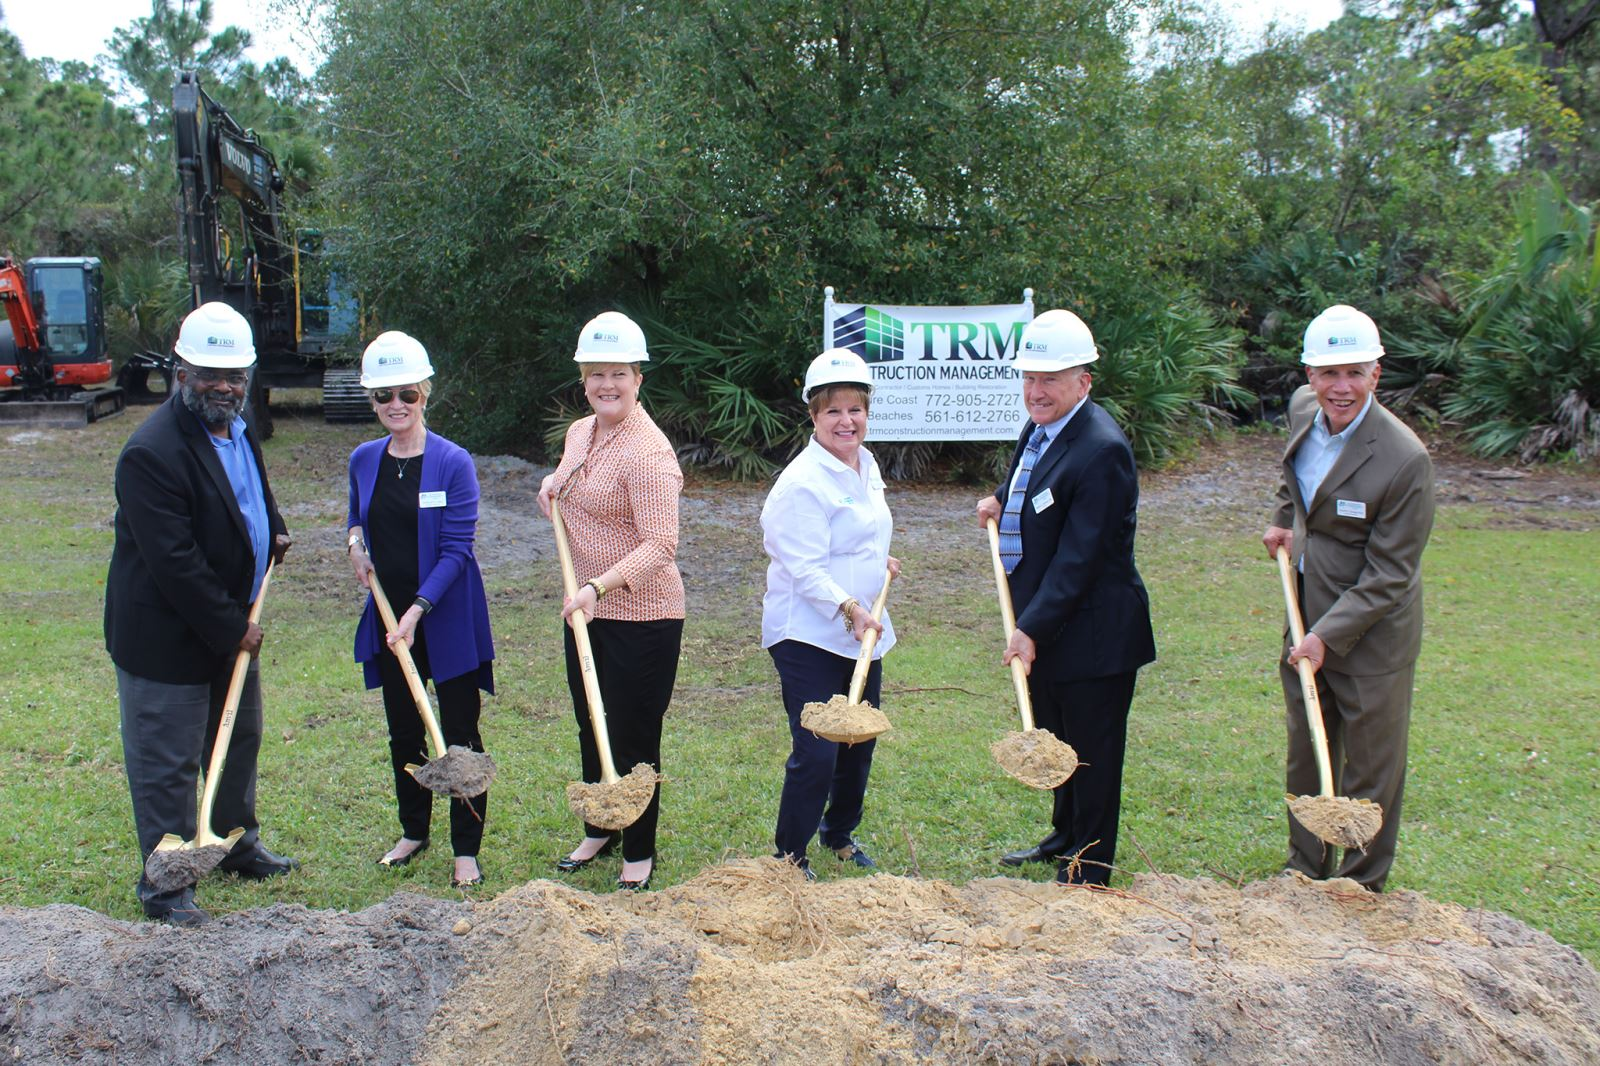 Groundbreaking ceremony for the 12th Day Center at Grace Lutheran Church in Port St. Lucie (LTR) William Armstead, Deborah A. Diaz, Bonney A. Johnson, Mary M. Barnes, Robert J. Gorman & David Dangerfield